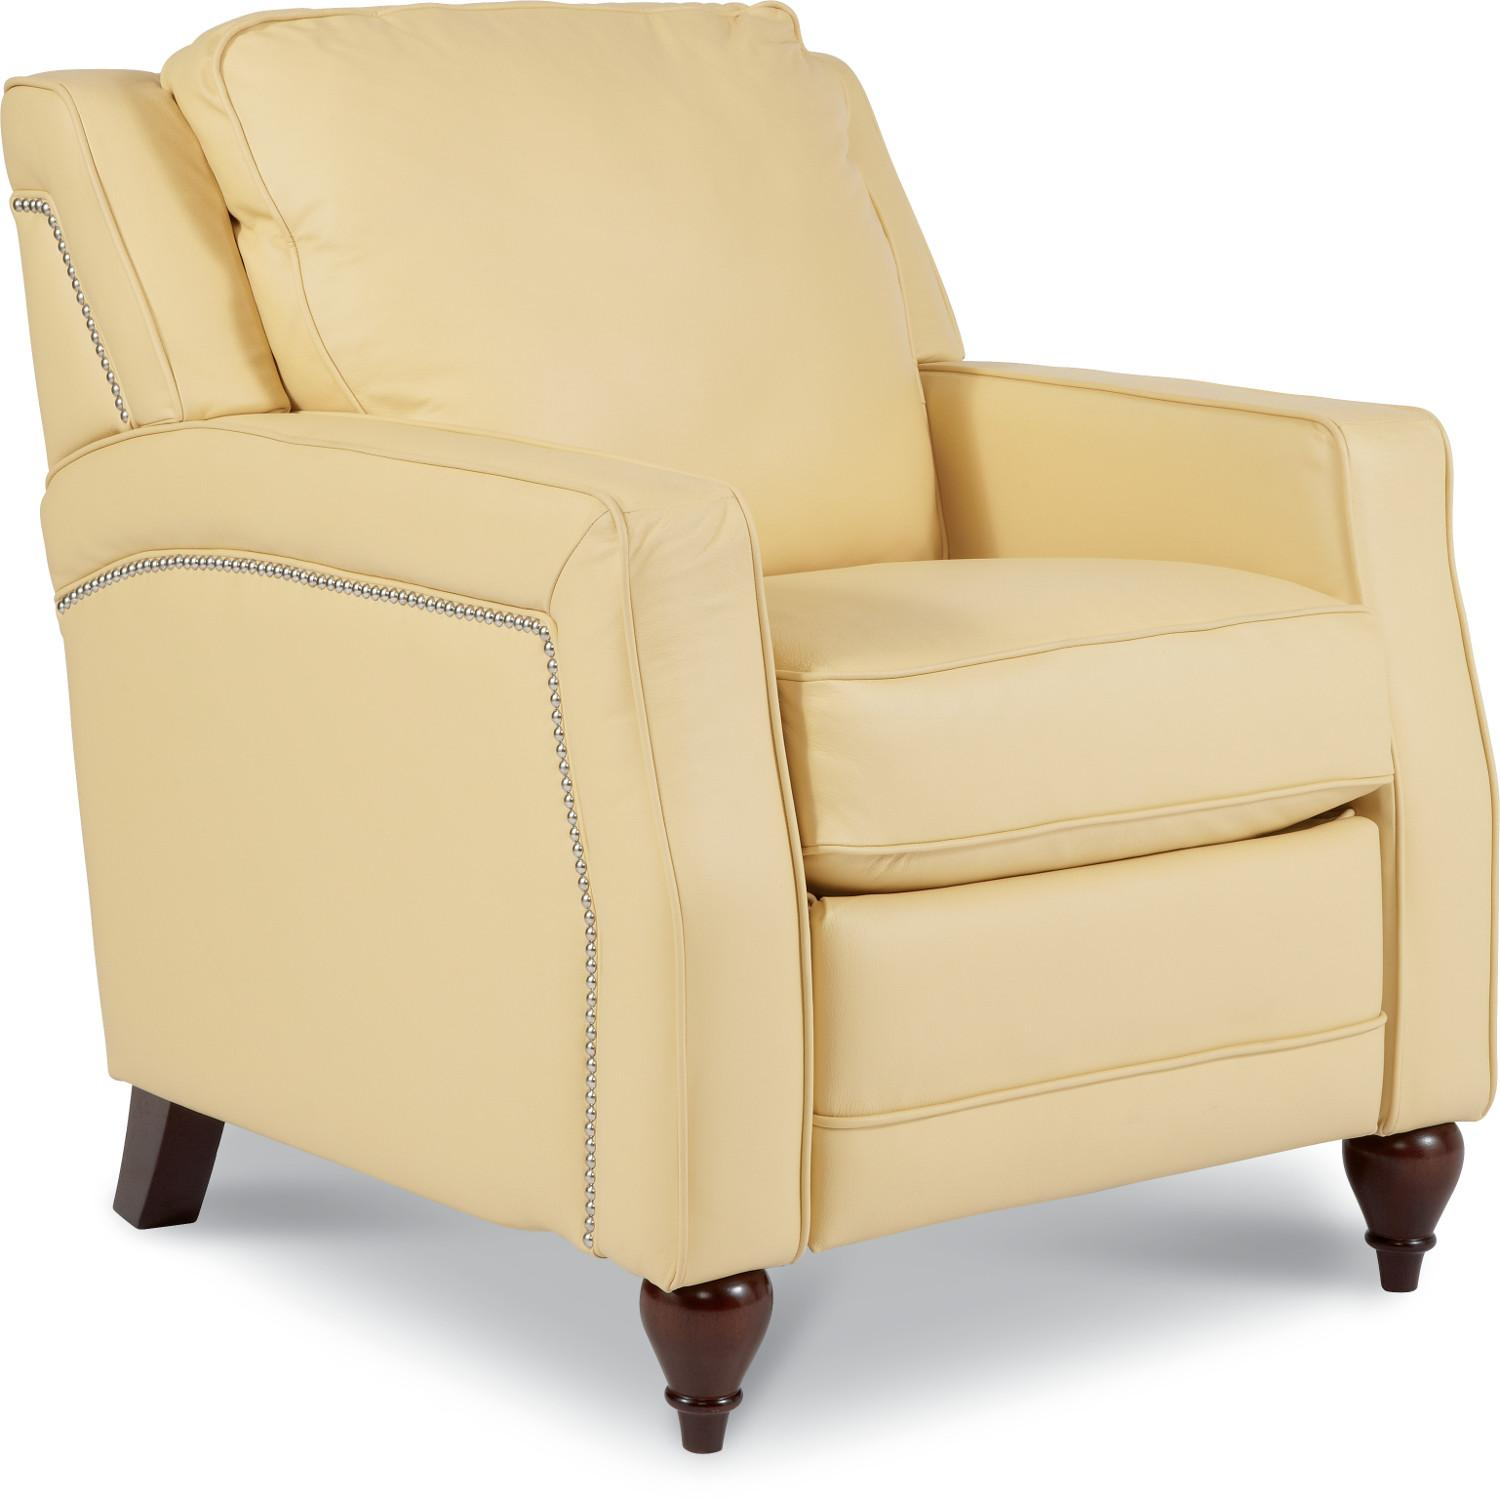 Recliners that look like chairs - Comfy Recliners Chairs That Don T Look Like Recliners Wih Wooden Leg For Home Furniture